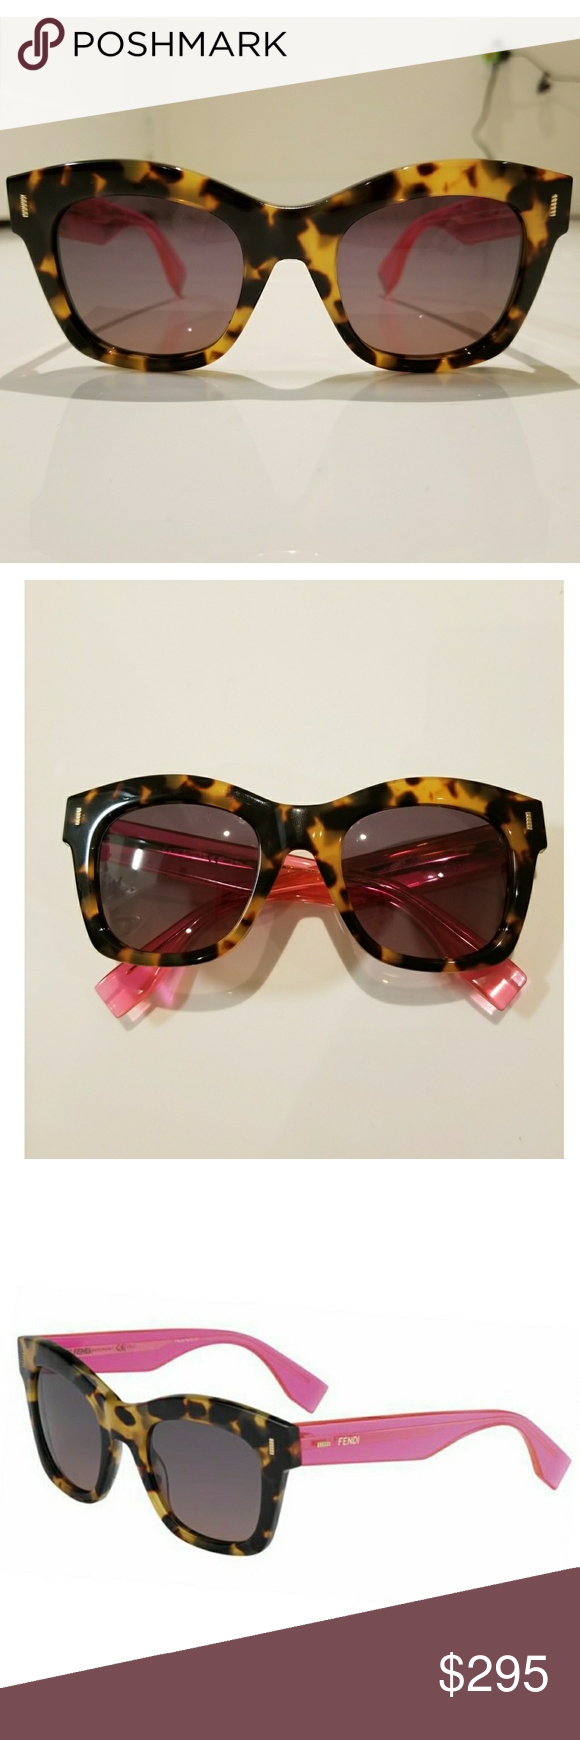 3e2cc15be672 Fendi square colorblock acetate sunglasses A beautiful pair of FENDI  leopard print and hot pink shades